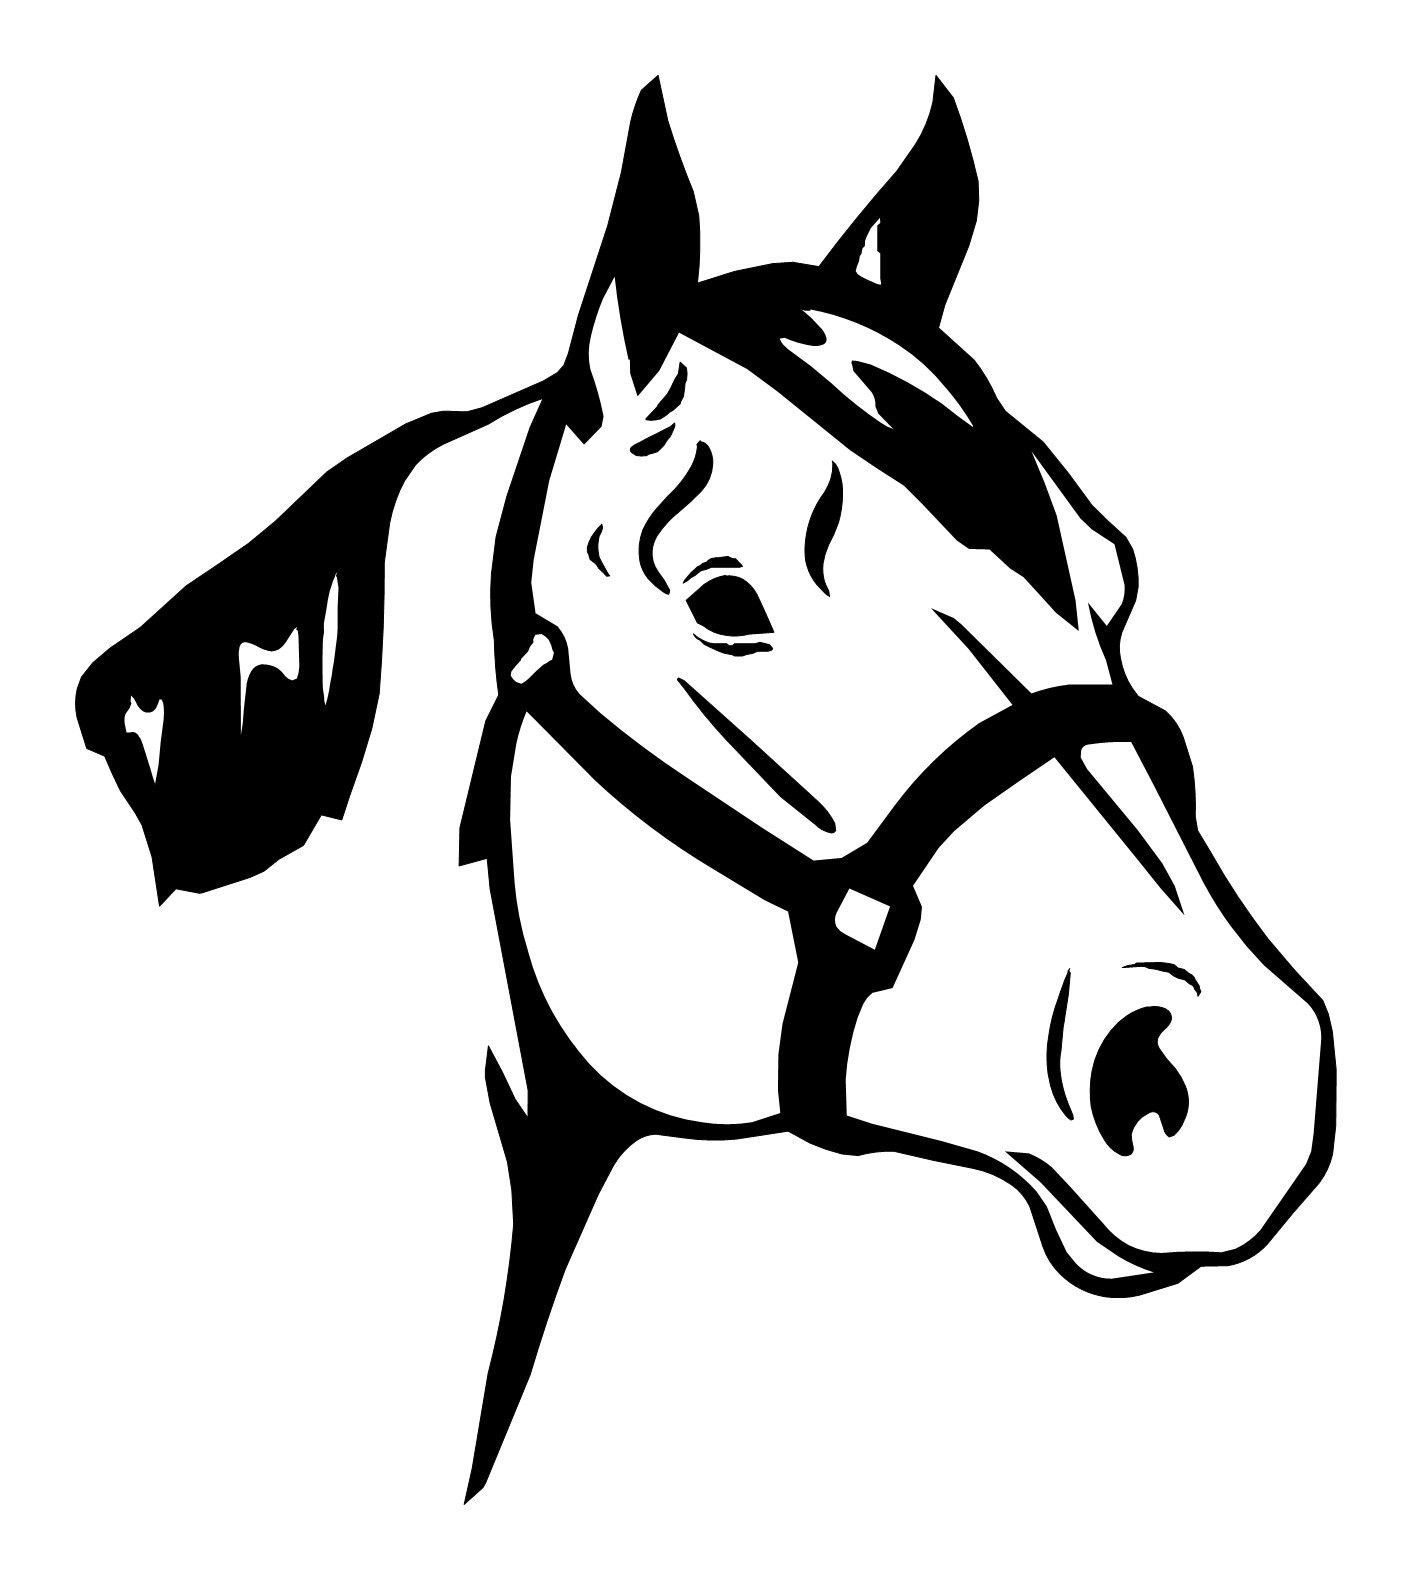 LARGE 10 HORSE HEAD Equestrian Cowboy Decal Truck Window Trailer Quarter Horse as well Phone store additionally Poker table further Mtd 620 Hydrostatic Lawn Tractor Mower Parts List besides Superhero Coloring Pages. on cell phones